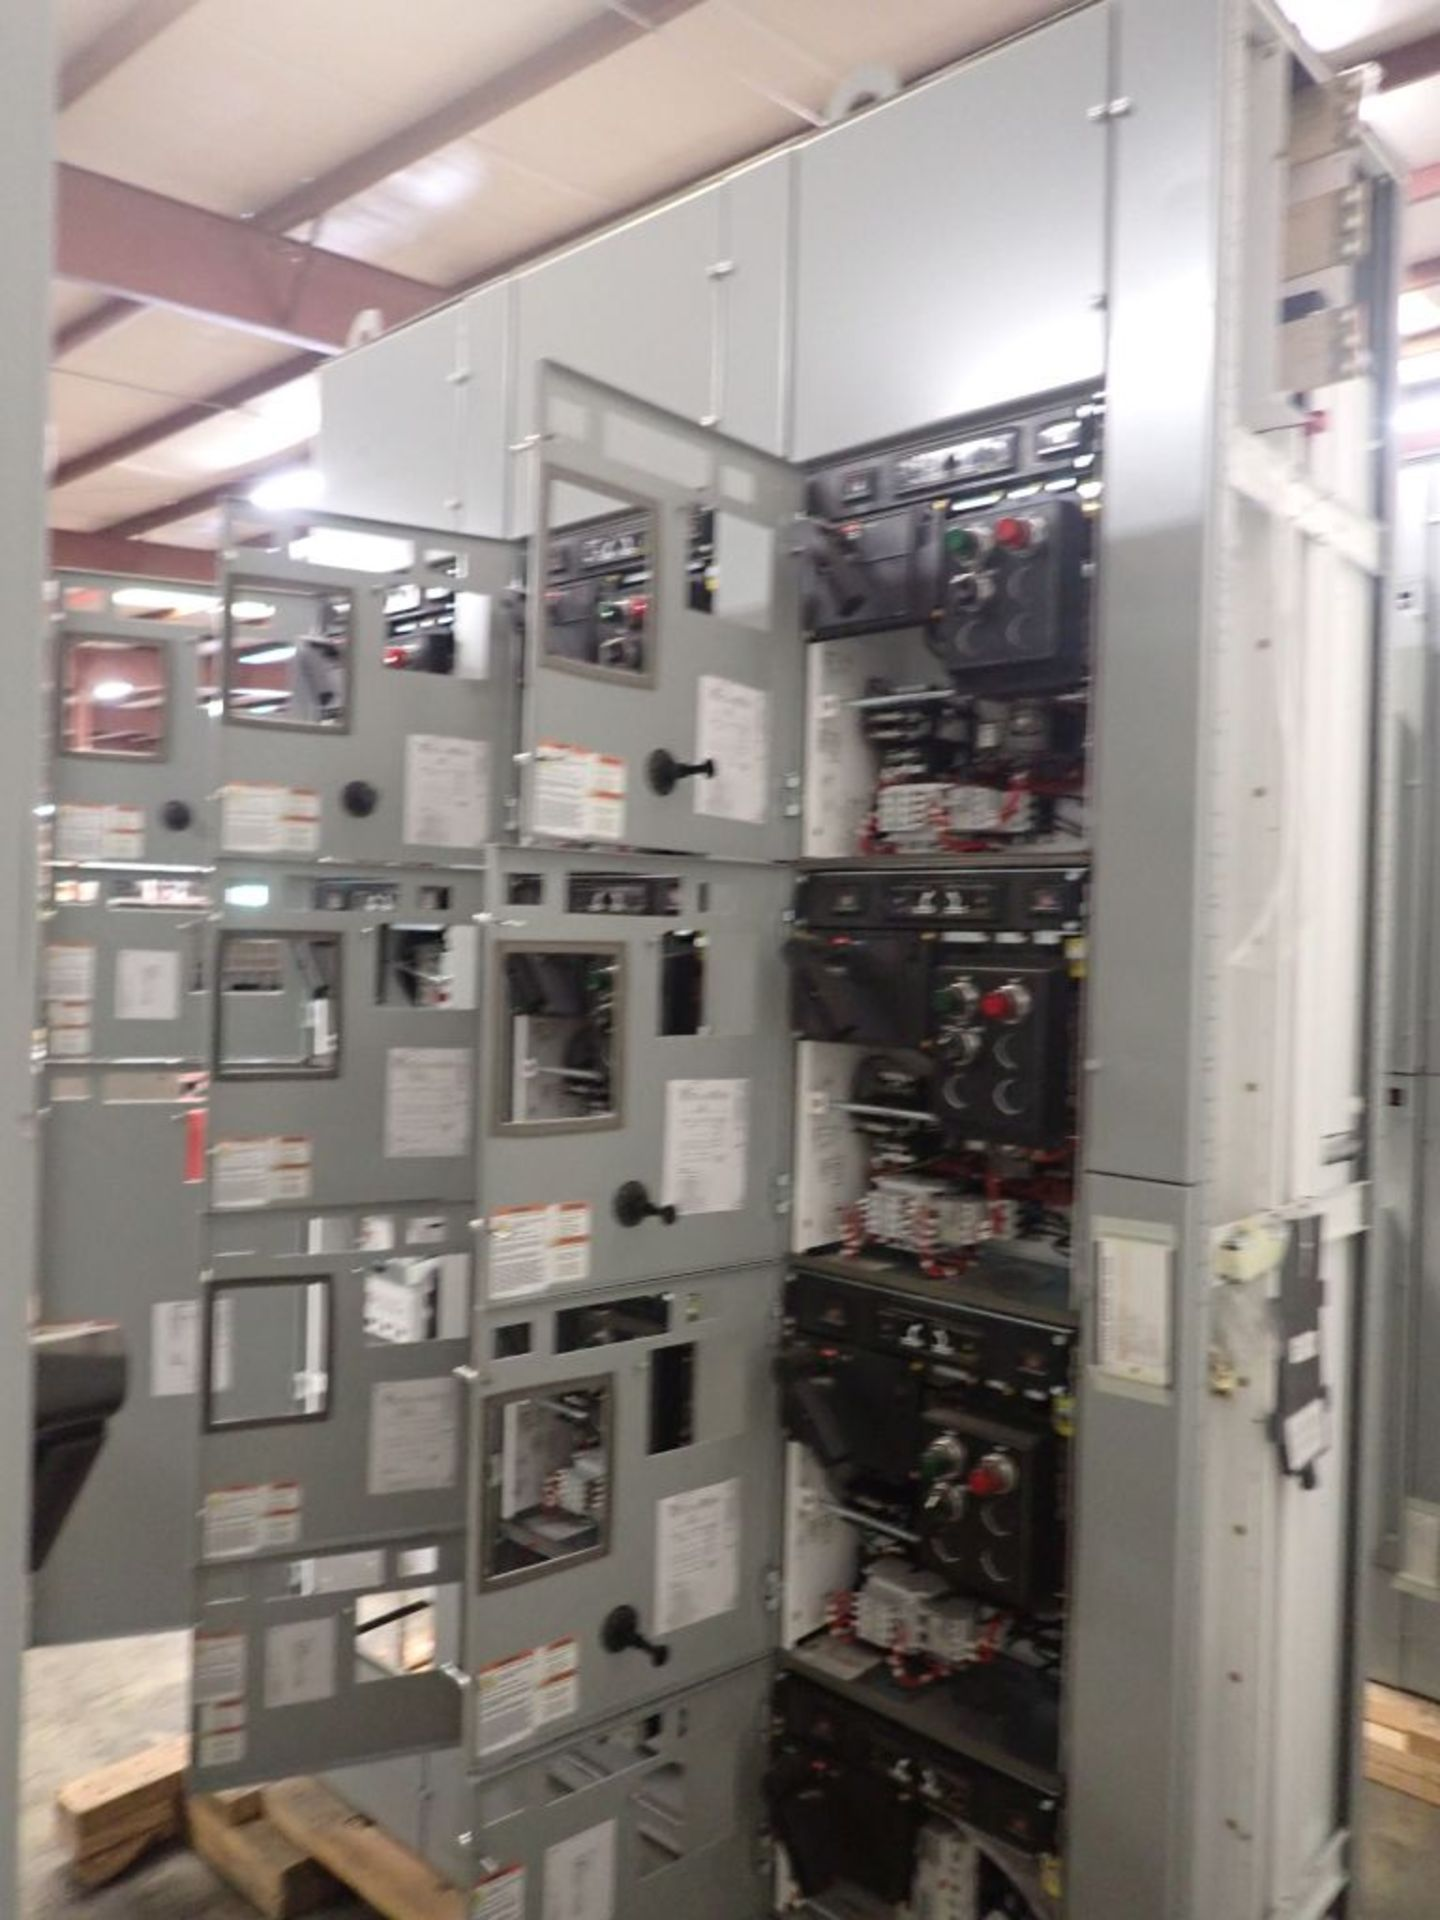 Eaton Freedom 2100 Series Motor Control Center | (2) F206-15A-10HP; (1) FDRB-250A; (1) FDRB-400A; ( - Image 9 of 104